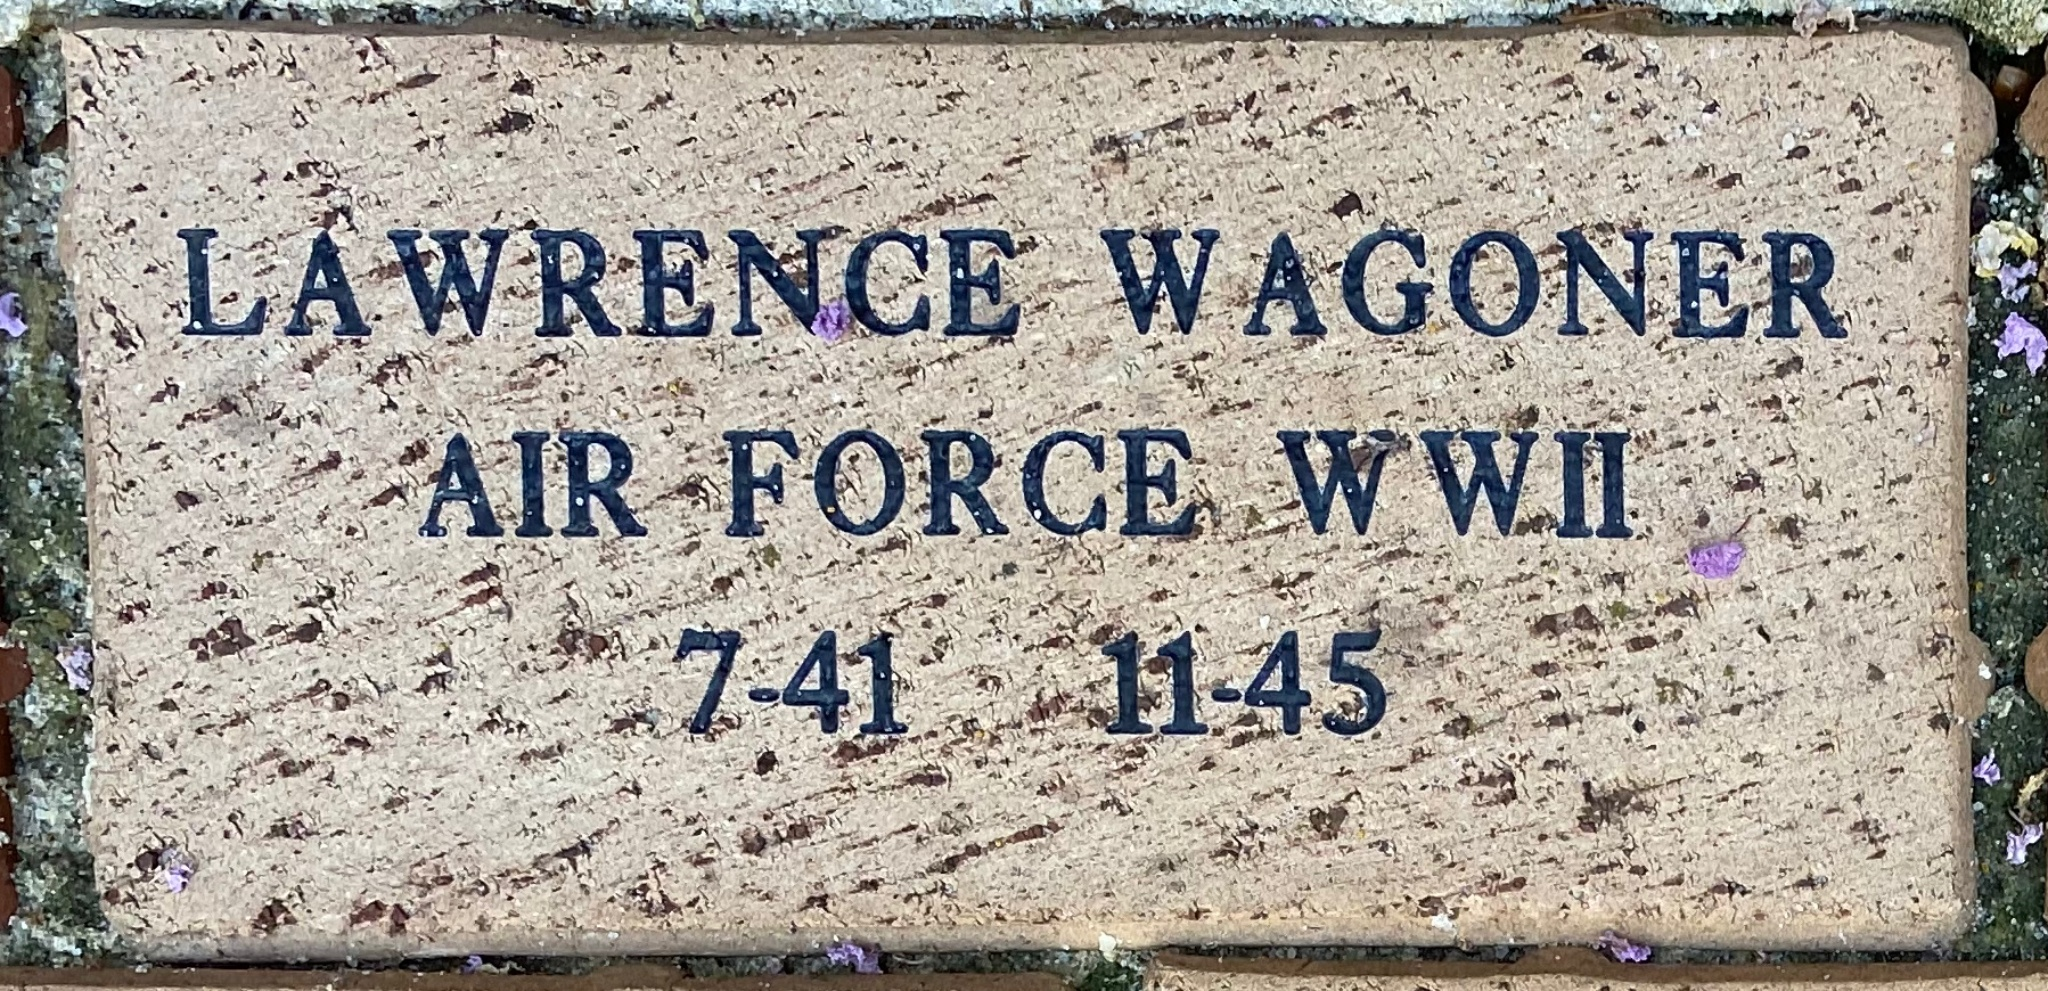 LAWRENCE WAGONER AIR FORCE WWII 7-41-11-45